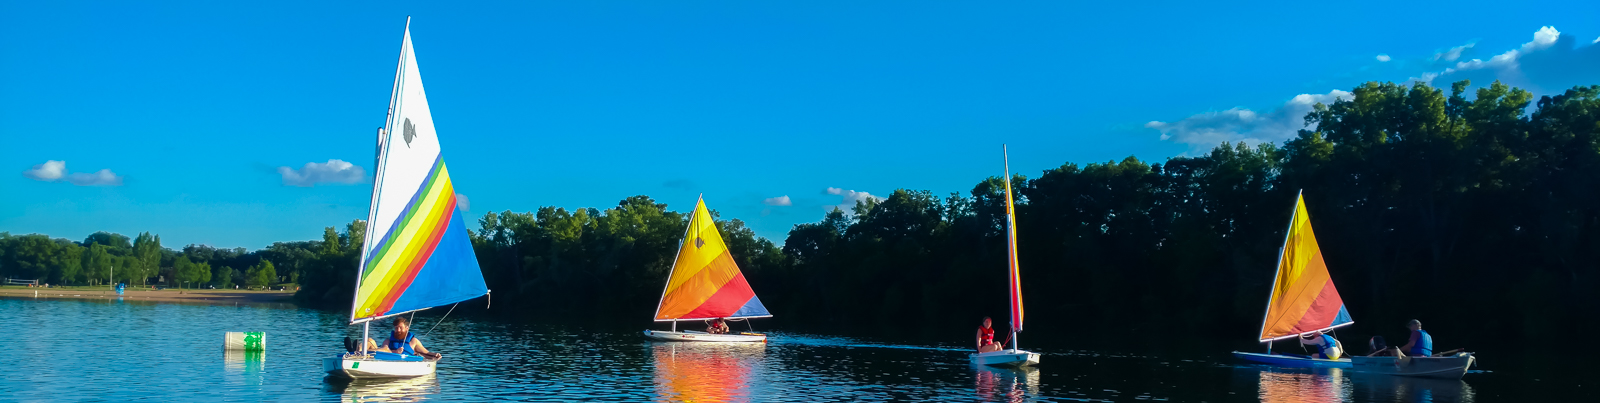 Sail boats on a river